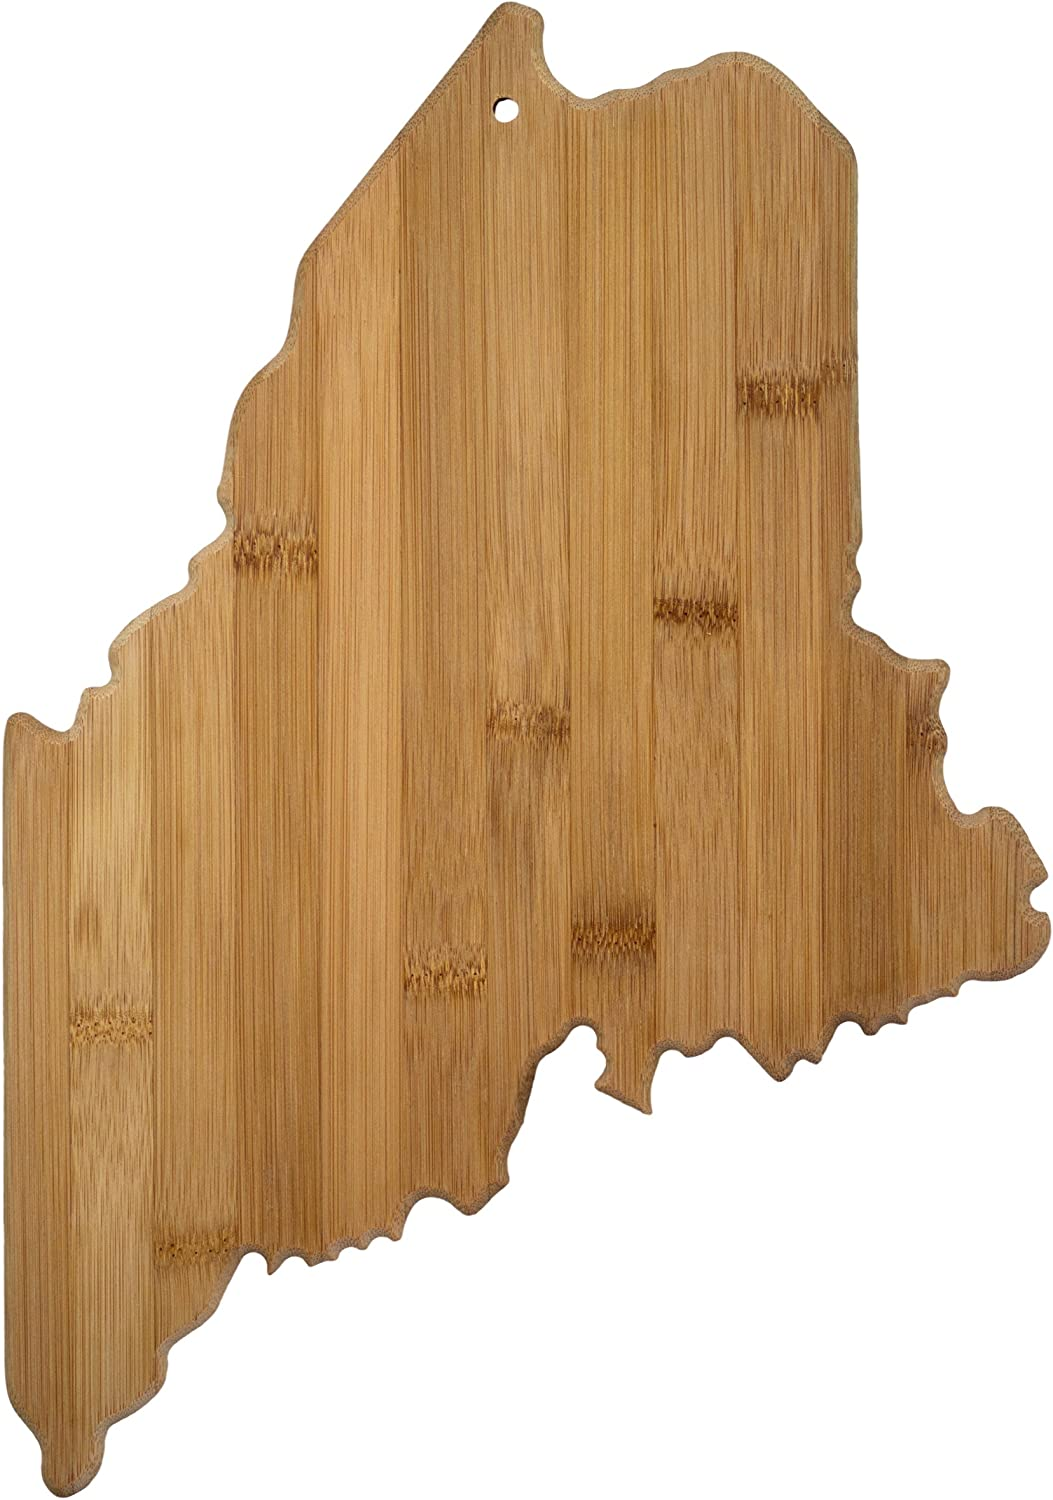 Totally Bamboo Maine State Shaped Bamboo Serving & Cutting Board